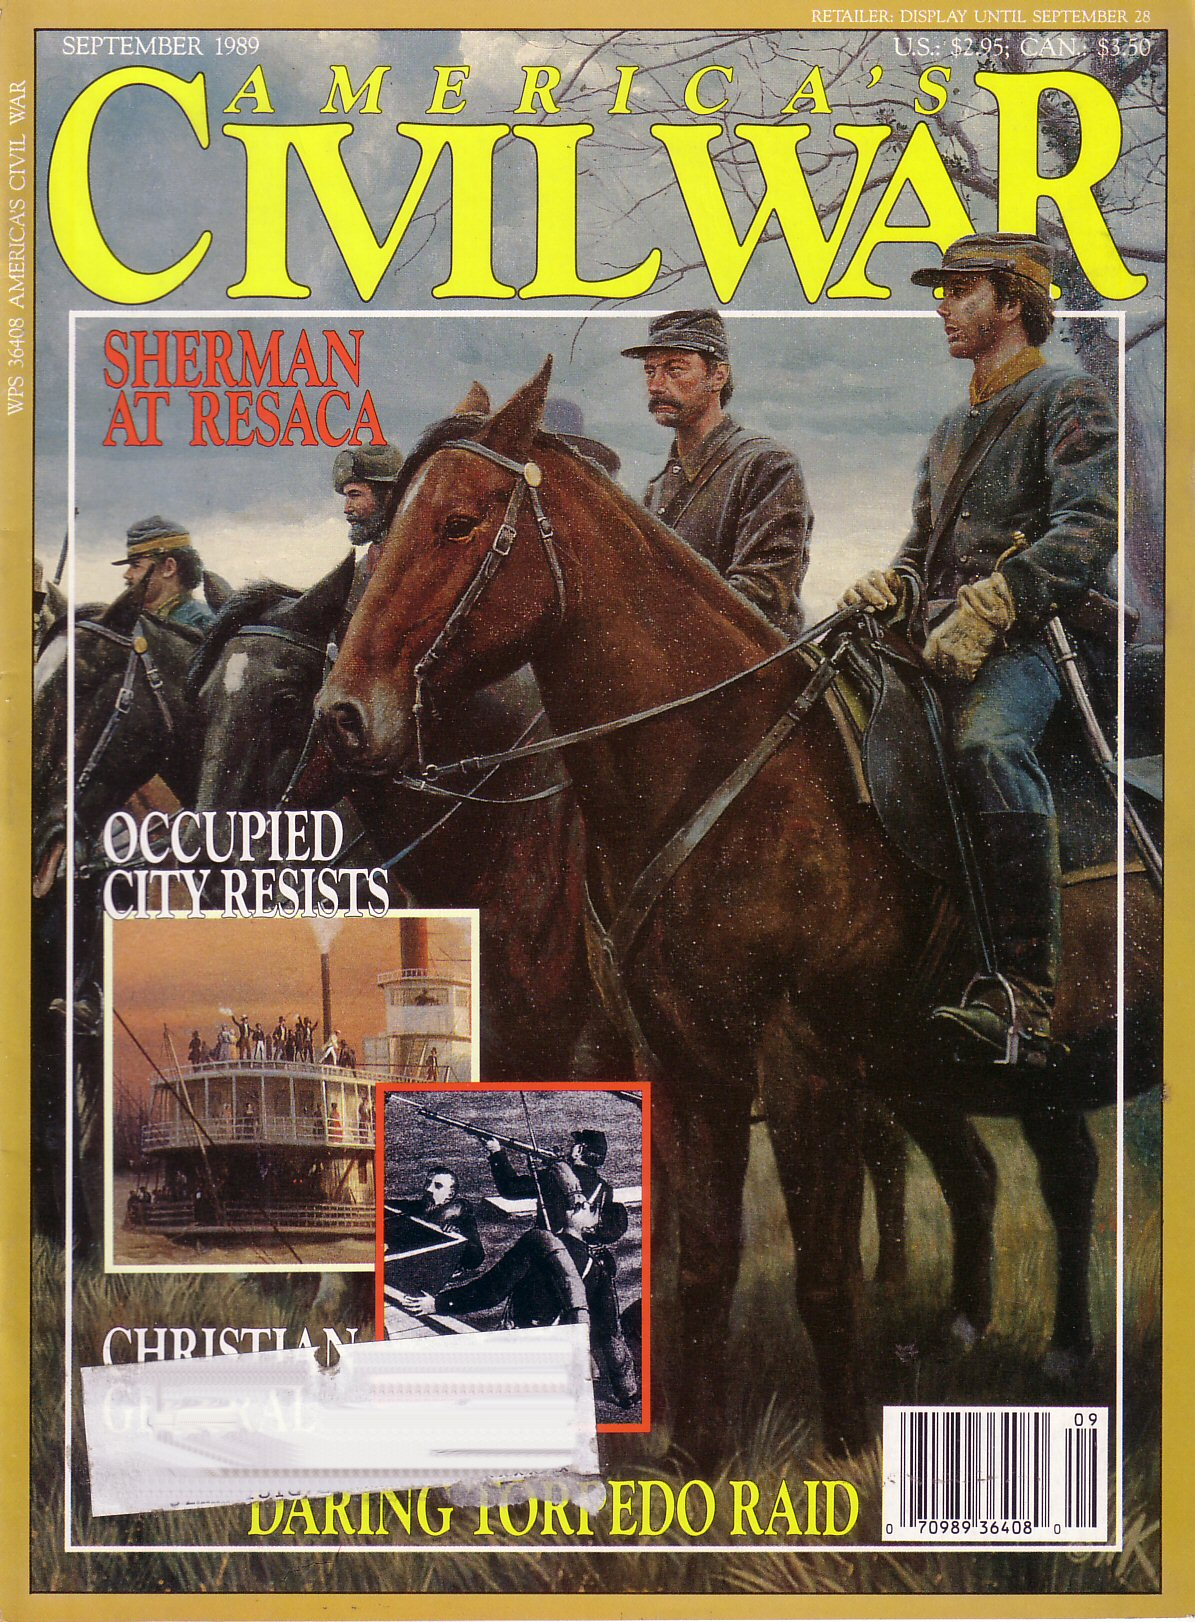 Americas Civil War, Volume 2, Number 3 (September 1989)